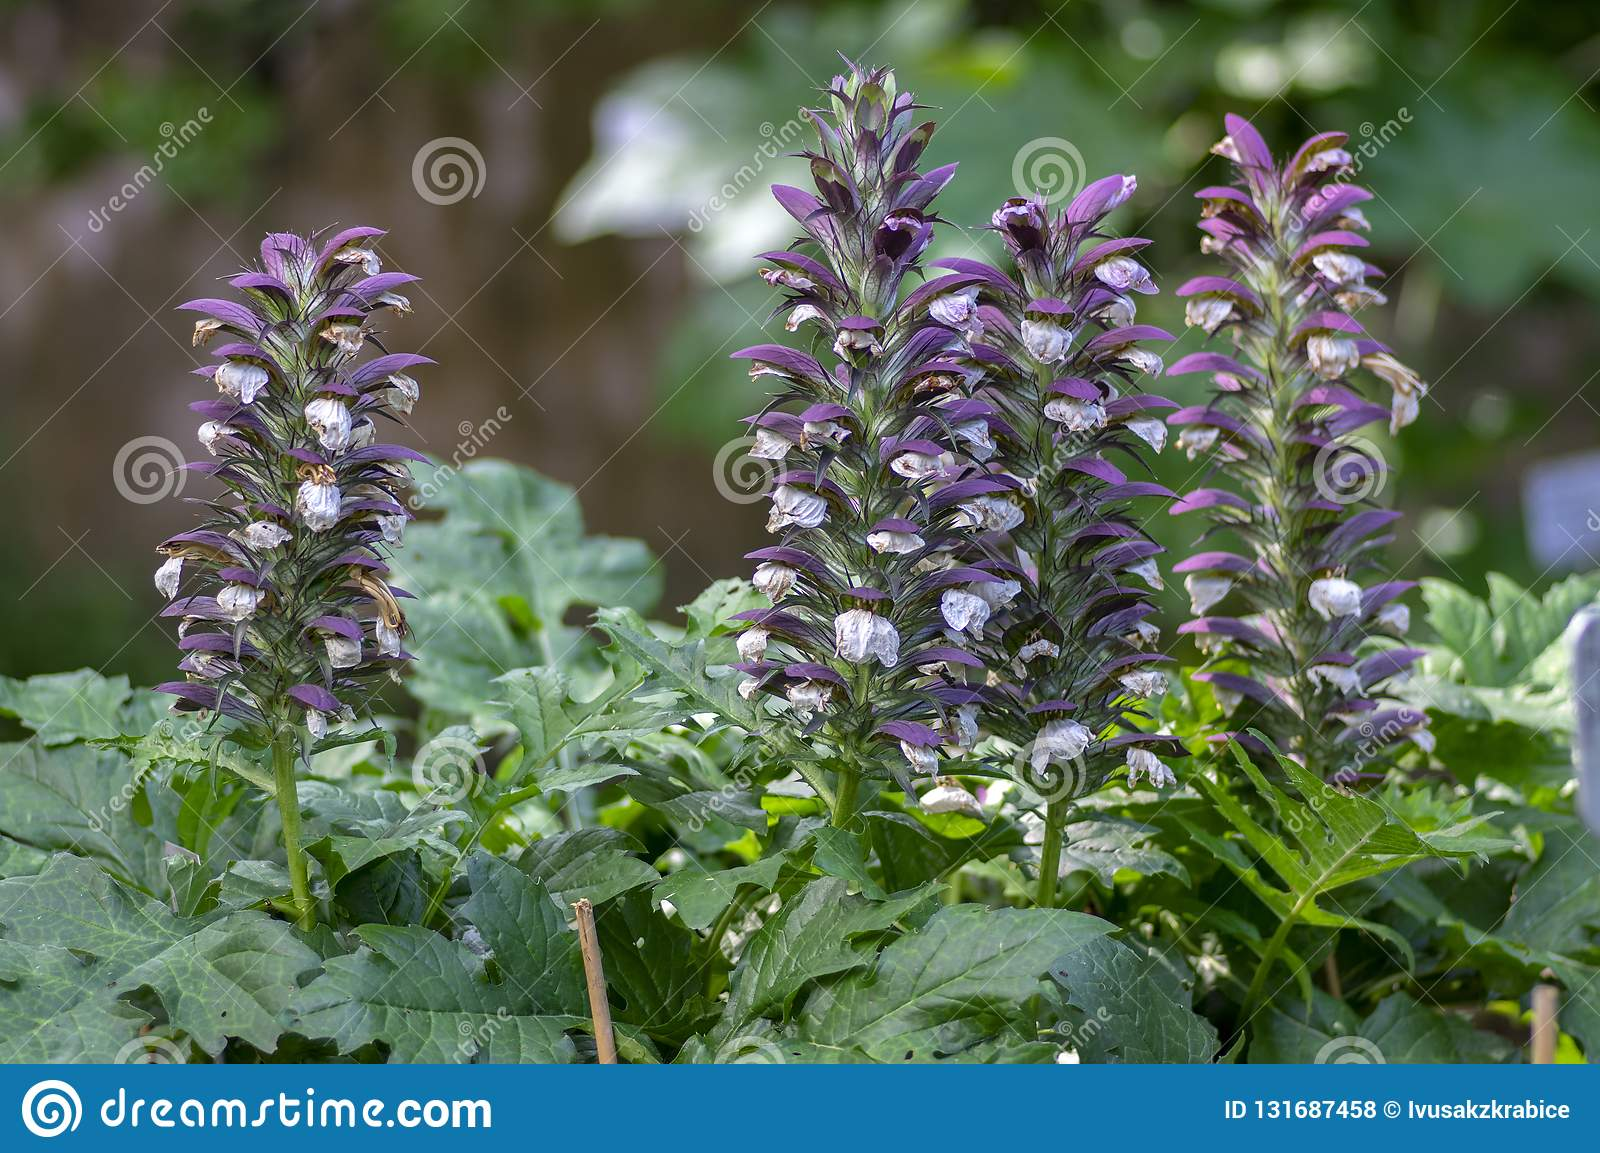 Acanthus Hungaricus High Flowering Plant Herbaceous Purple White